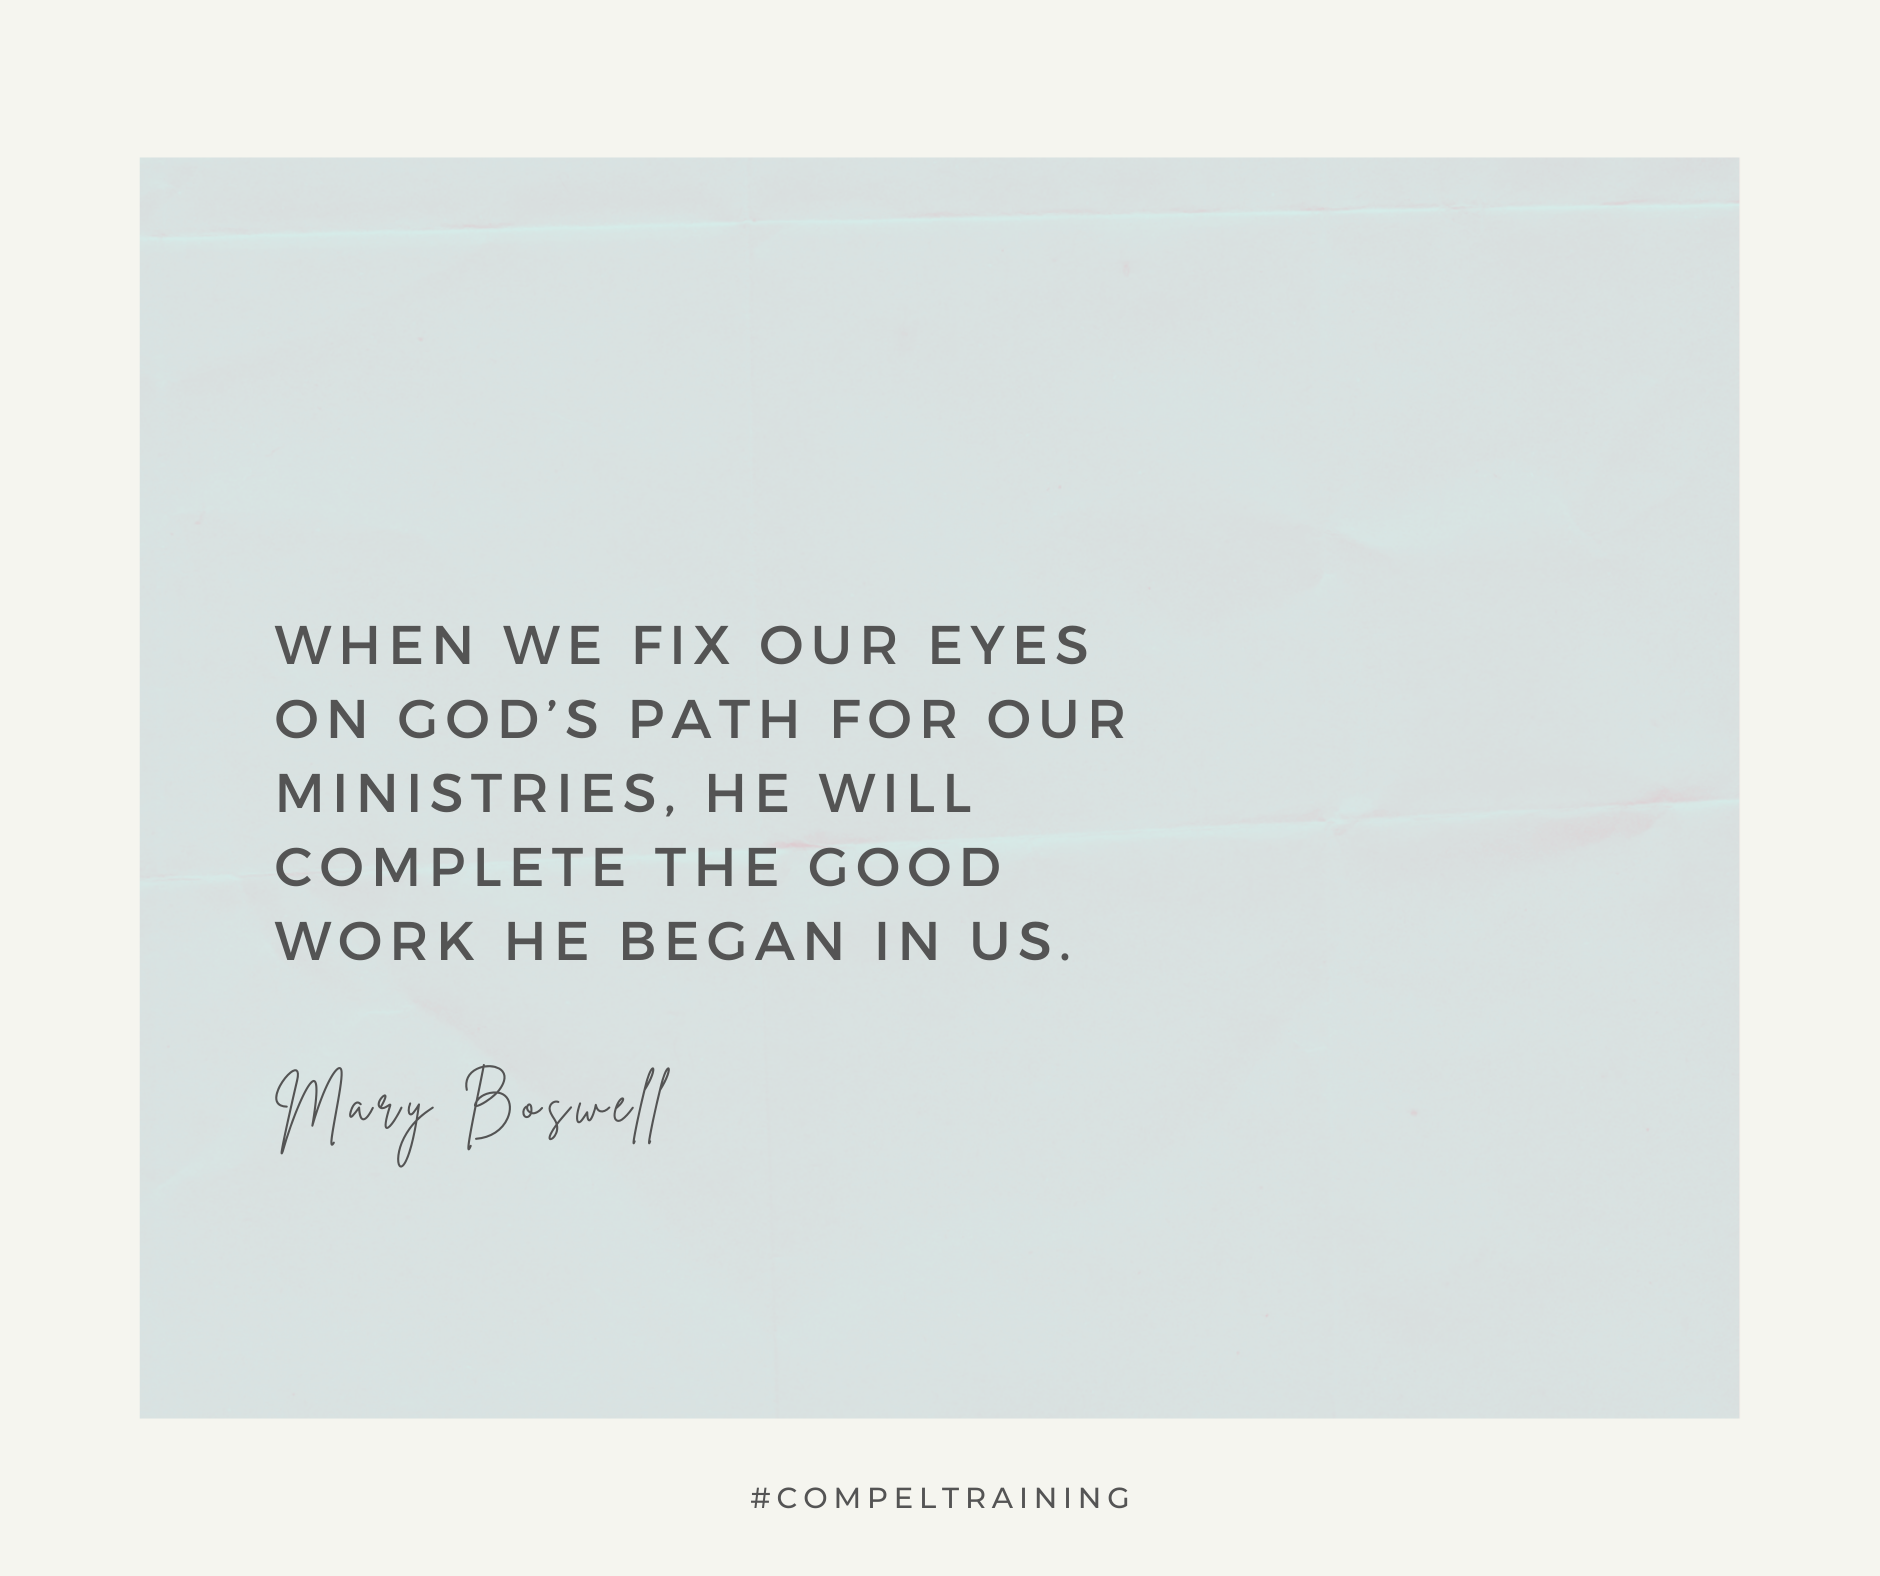 Three Questions to Keep Us Focused on God's Path